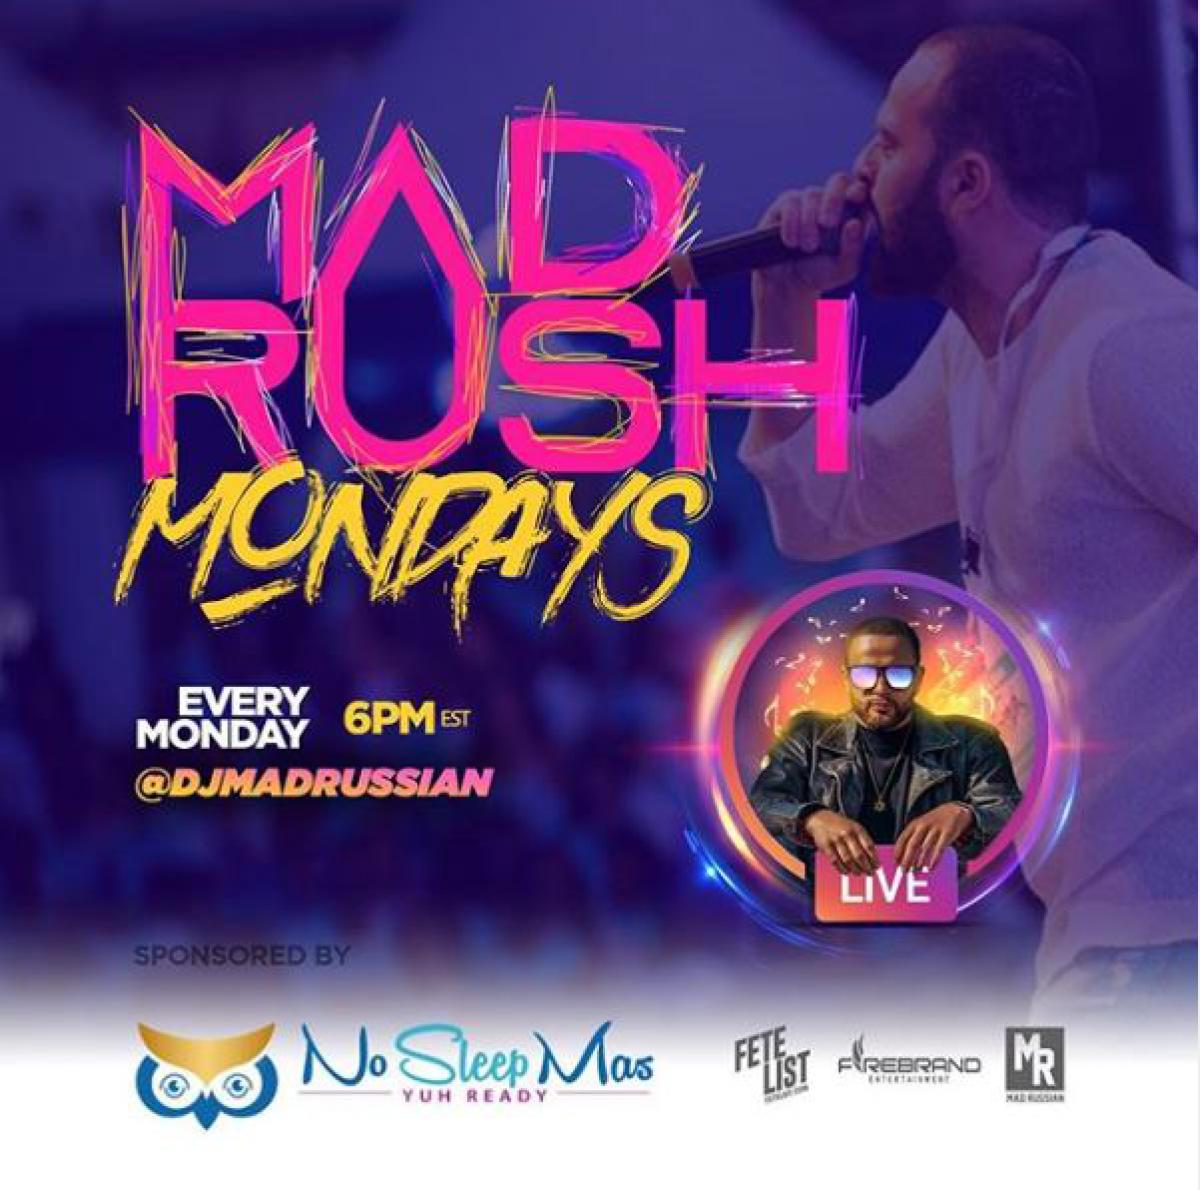 Mad Rush Mondays flyer or graphic.